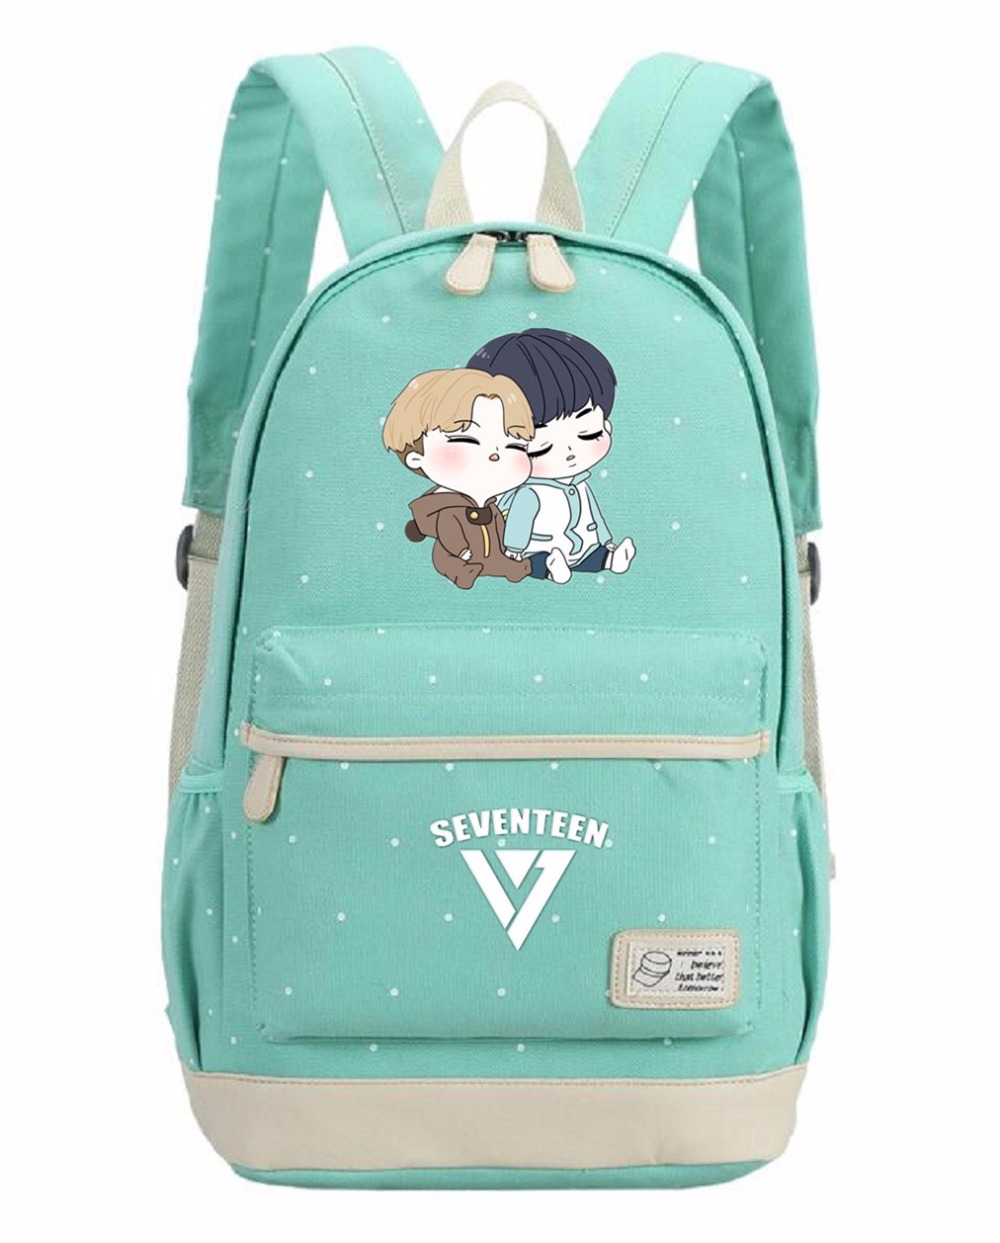 Backpacks Komikoy Seventeen 17 Canvas Laptop Bag Flower Rucksacks Backpack Student School Travel Bags Daypack Removing Obstruction